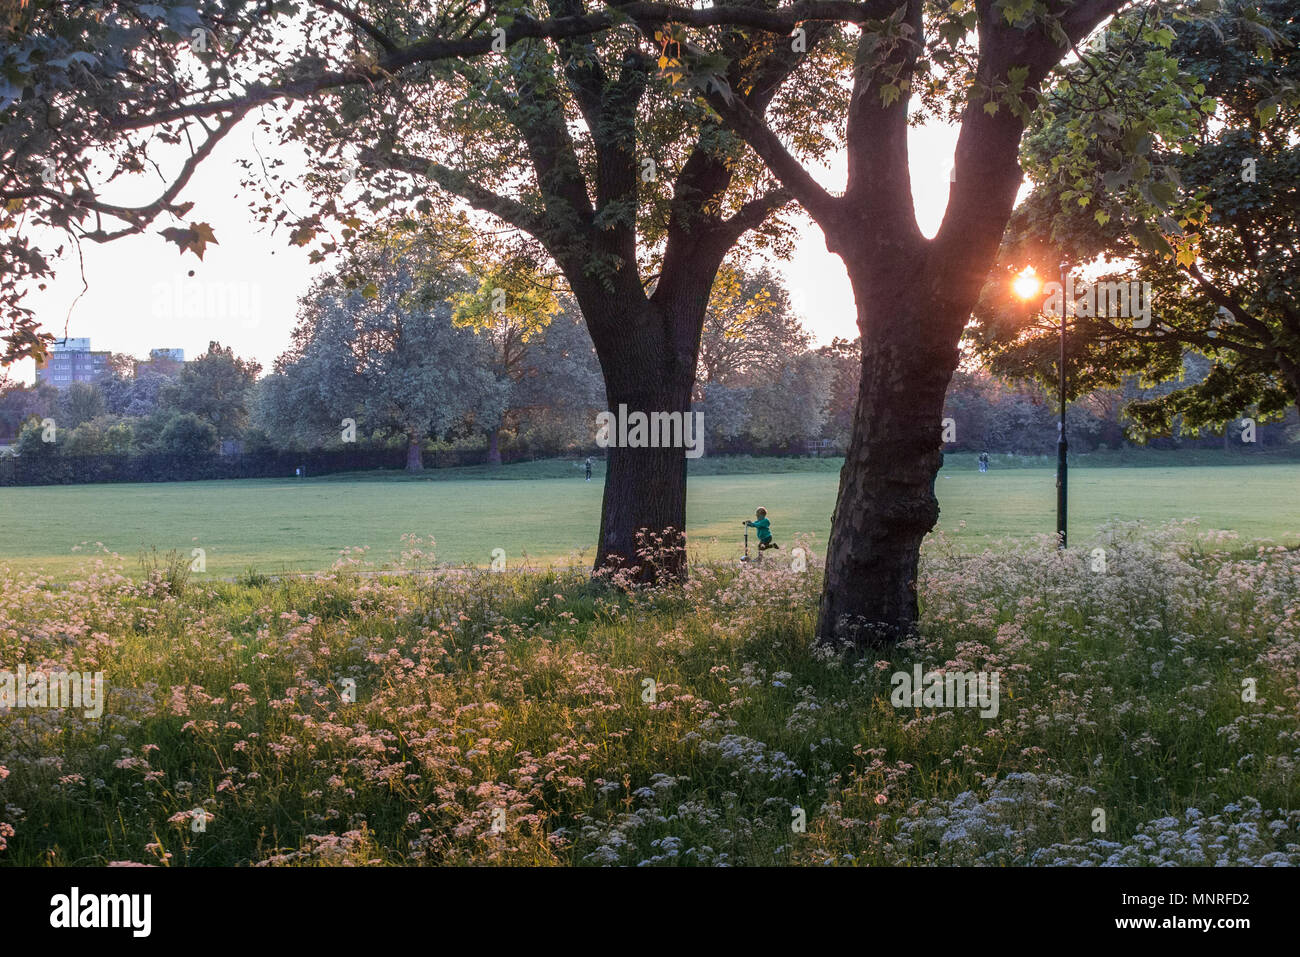 A young child scooters in a London park - Stock Image